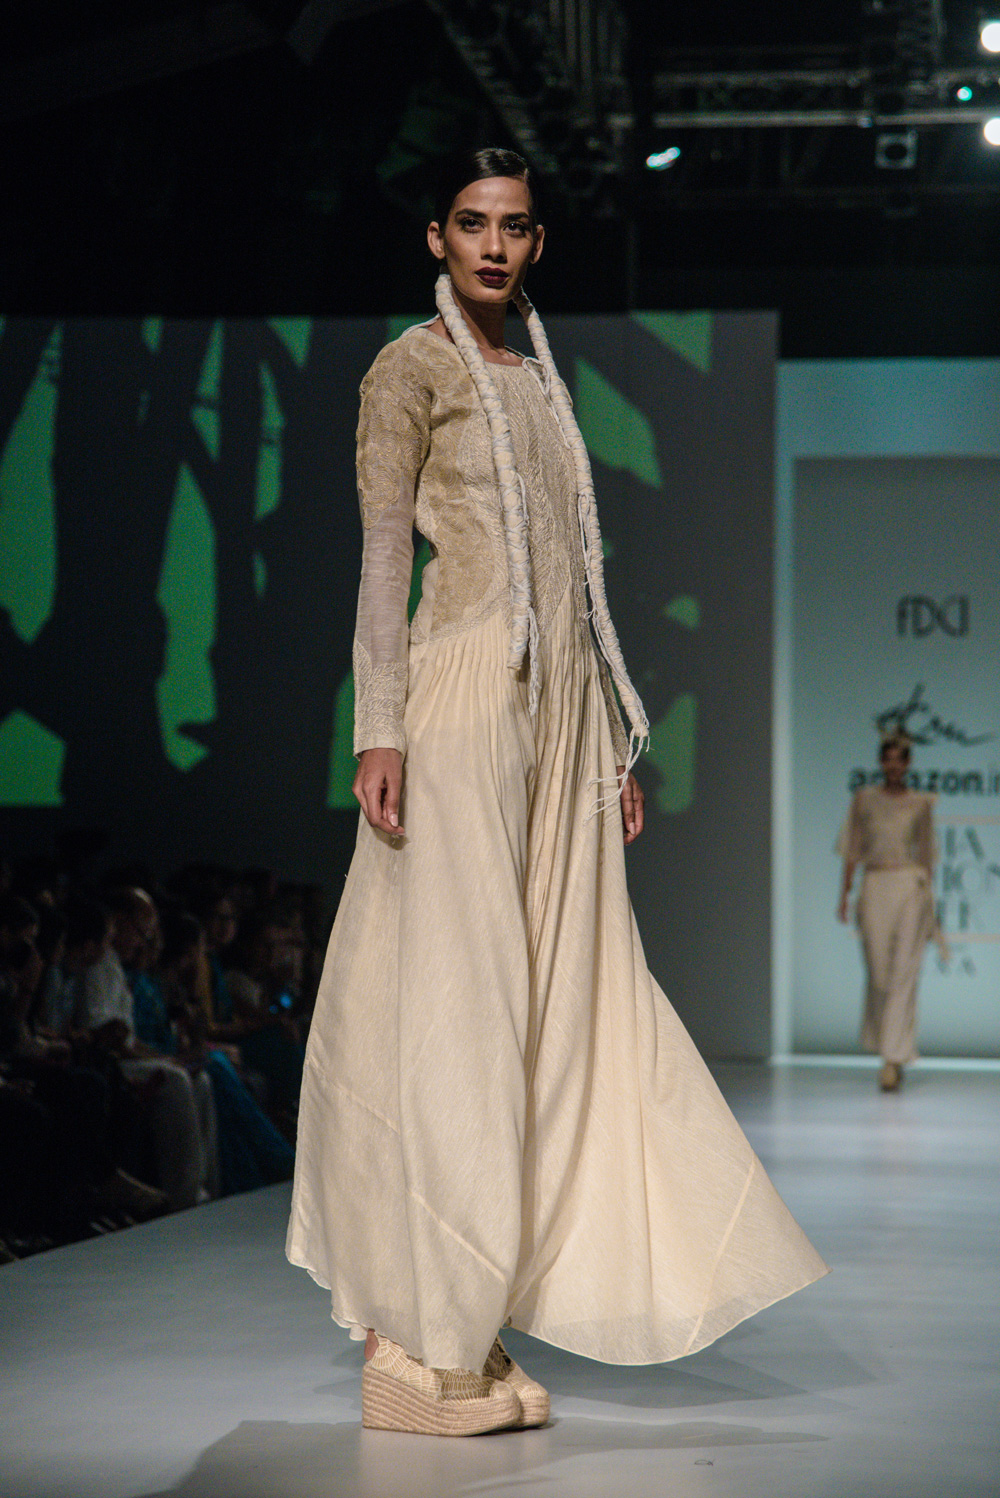 Ekru by Ektaa FDCI Amazon India Fashion Week Spring Summer 2018 Look 1